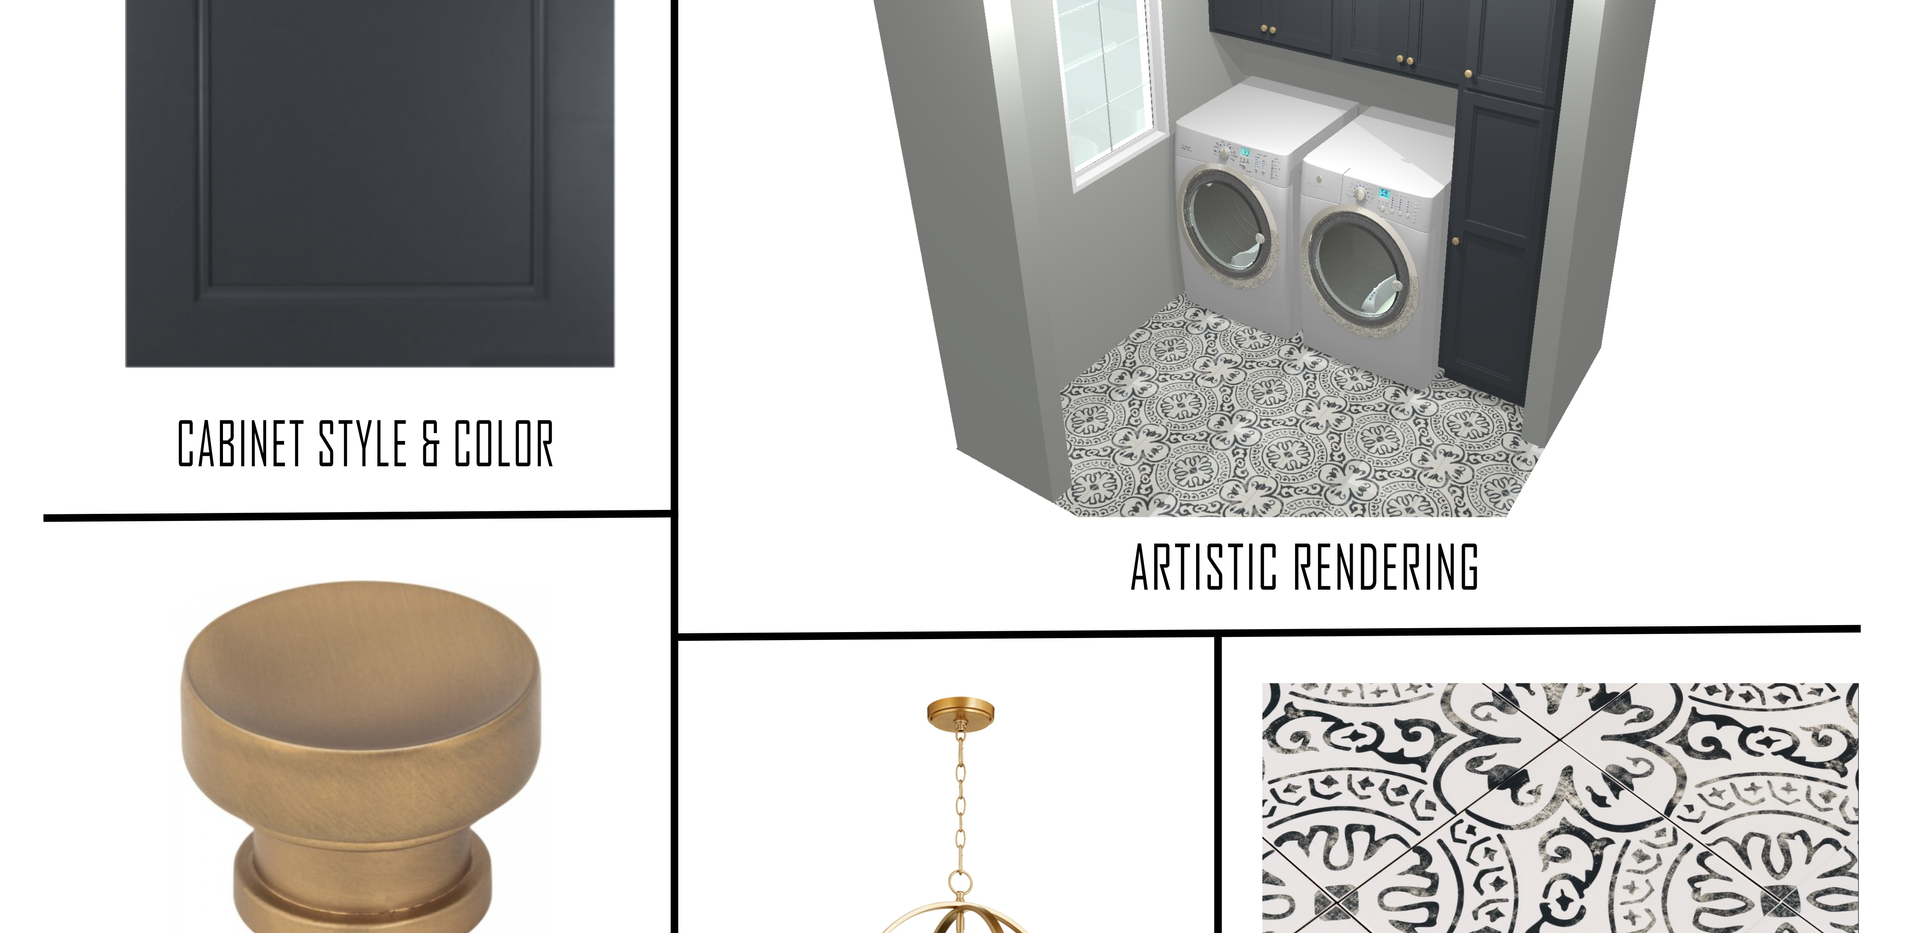 3SG Laundry Room Design Board.png